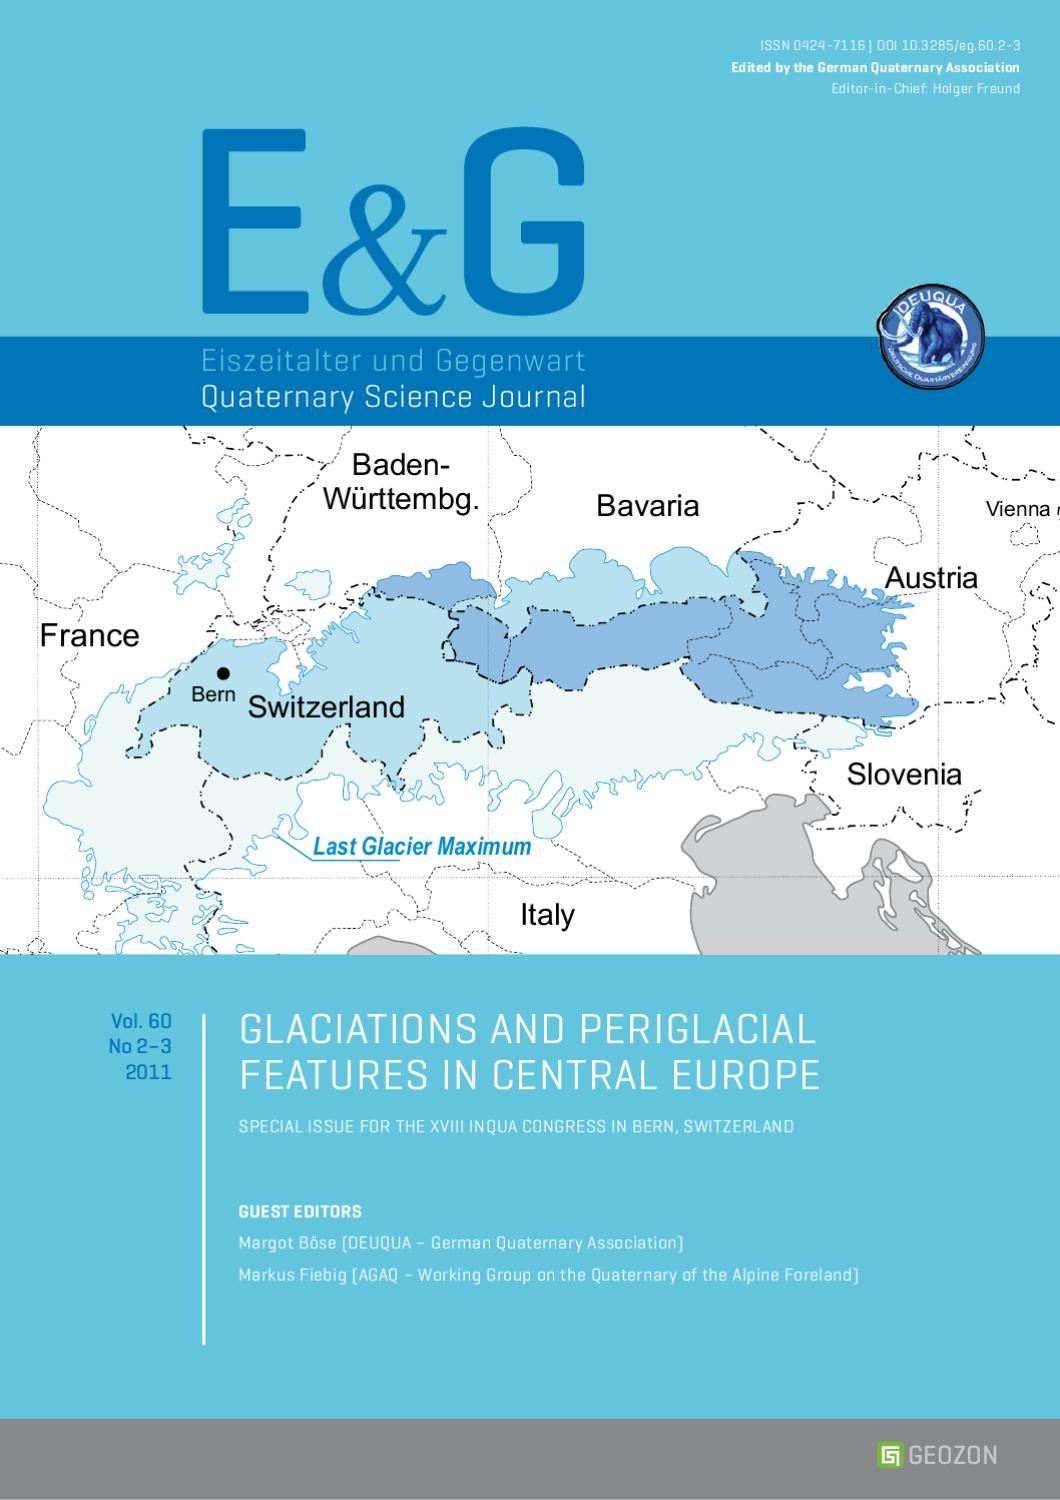 E&G – Quaternary Science Journal - Vol  60 No 2-3 by Geozon